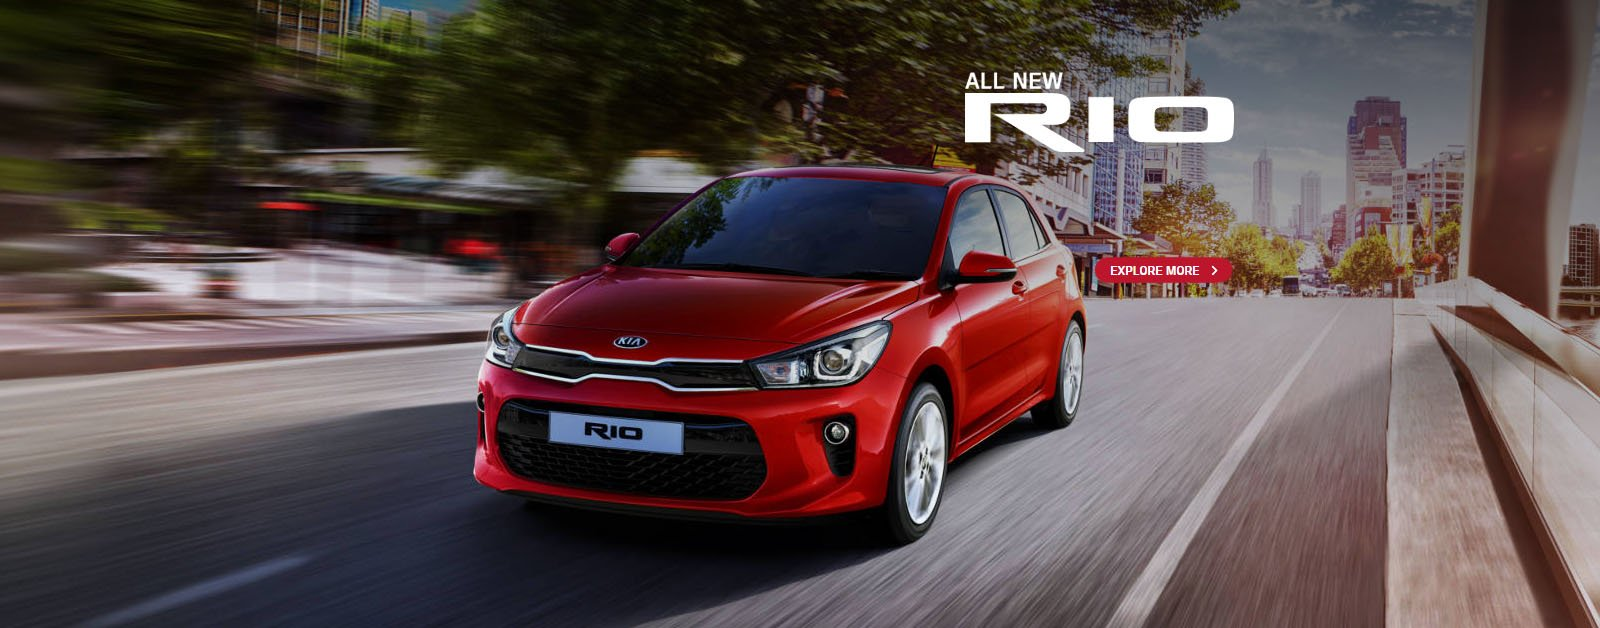 The all new Kia Rio is here now and available at Brendale Kia Brisbane.